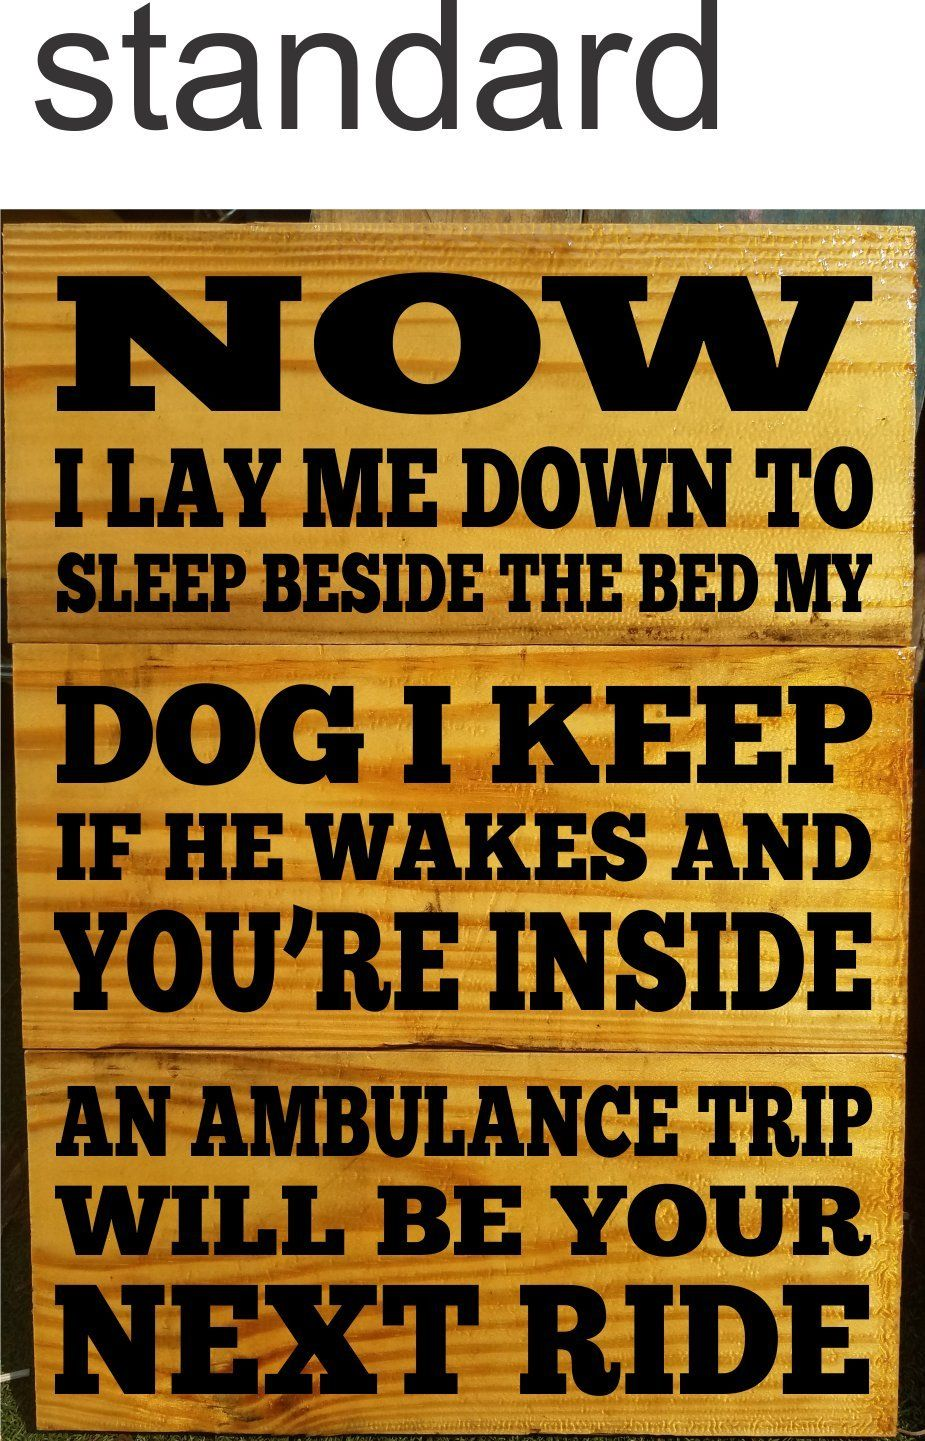 Outdoor Dog Sign Plaque Pallet Wood Now I Lay Me Down To Sleep Beside The Bed My Dog I Keep Bed Time Prayer More Dog Signs Outdoor Dog Dogs